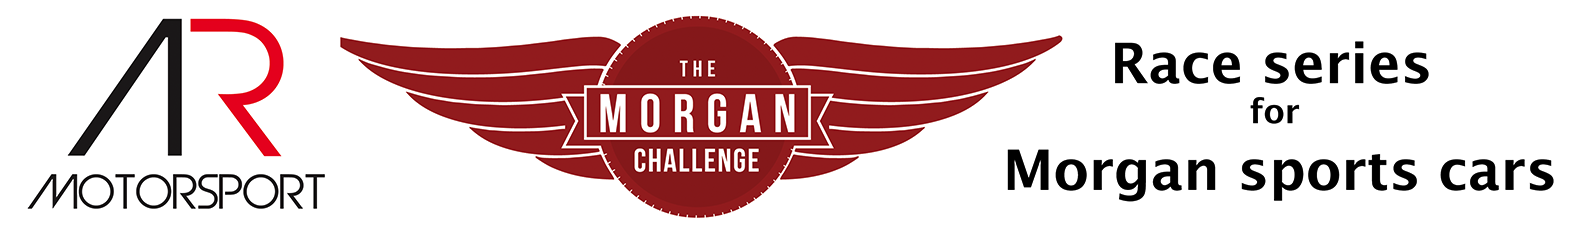 Morgan Challenge Race Series